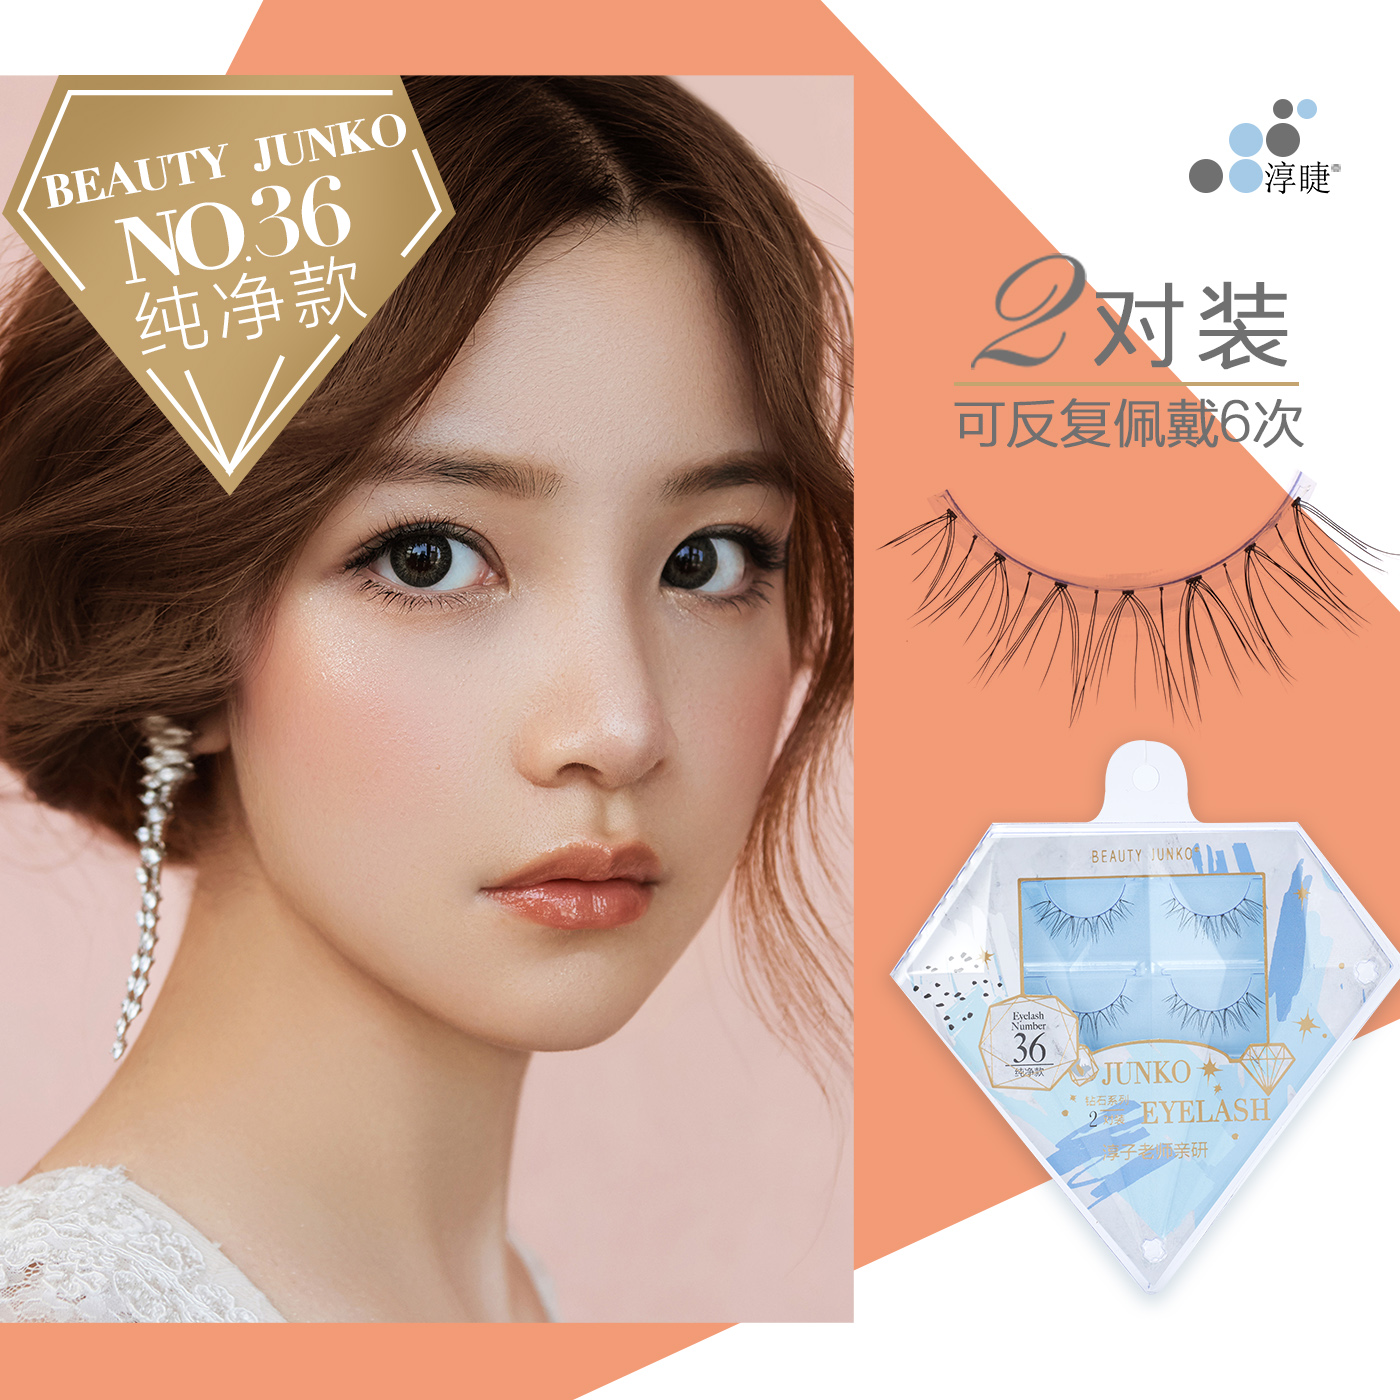 Chun lashes, Chun Zi's research on supernatural false eyelashes, diamond series, No. 36, pure model, recommended by Mr. Xu